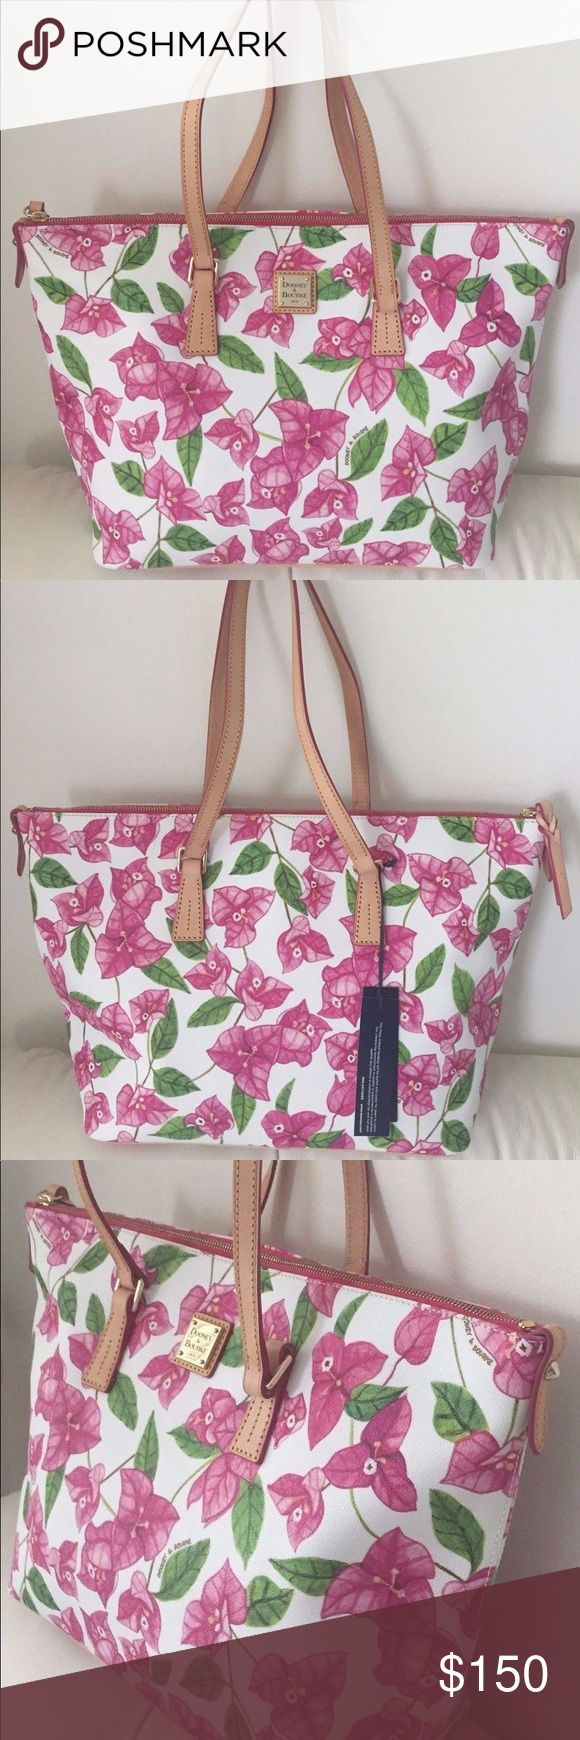 "NWT Dooney & Bourke floral shoulder bag NWT authentic Dooney & Bourke floral shoulder bag •Coated canvas with leather trim •Inside zipper and multifunction pockets •Inside key hook •Top zipper closure •Bottom 4 protective feet •Dimensions 17"" L x 11"" H x 6"" W •Handles with 9"" drop •Retail $248 **Package will come with free gifts! ~BUNDLE with my other listings for savings! Dooney & Bourke Bags Shoulder Bags"